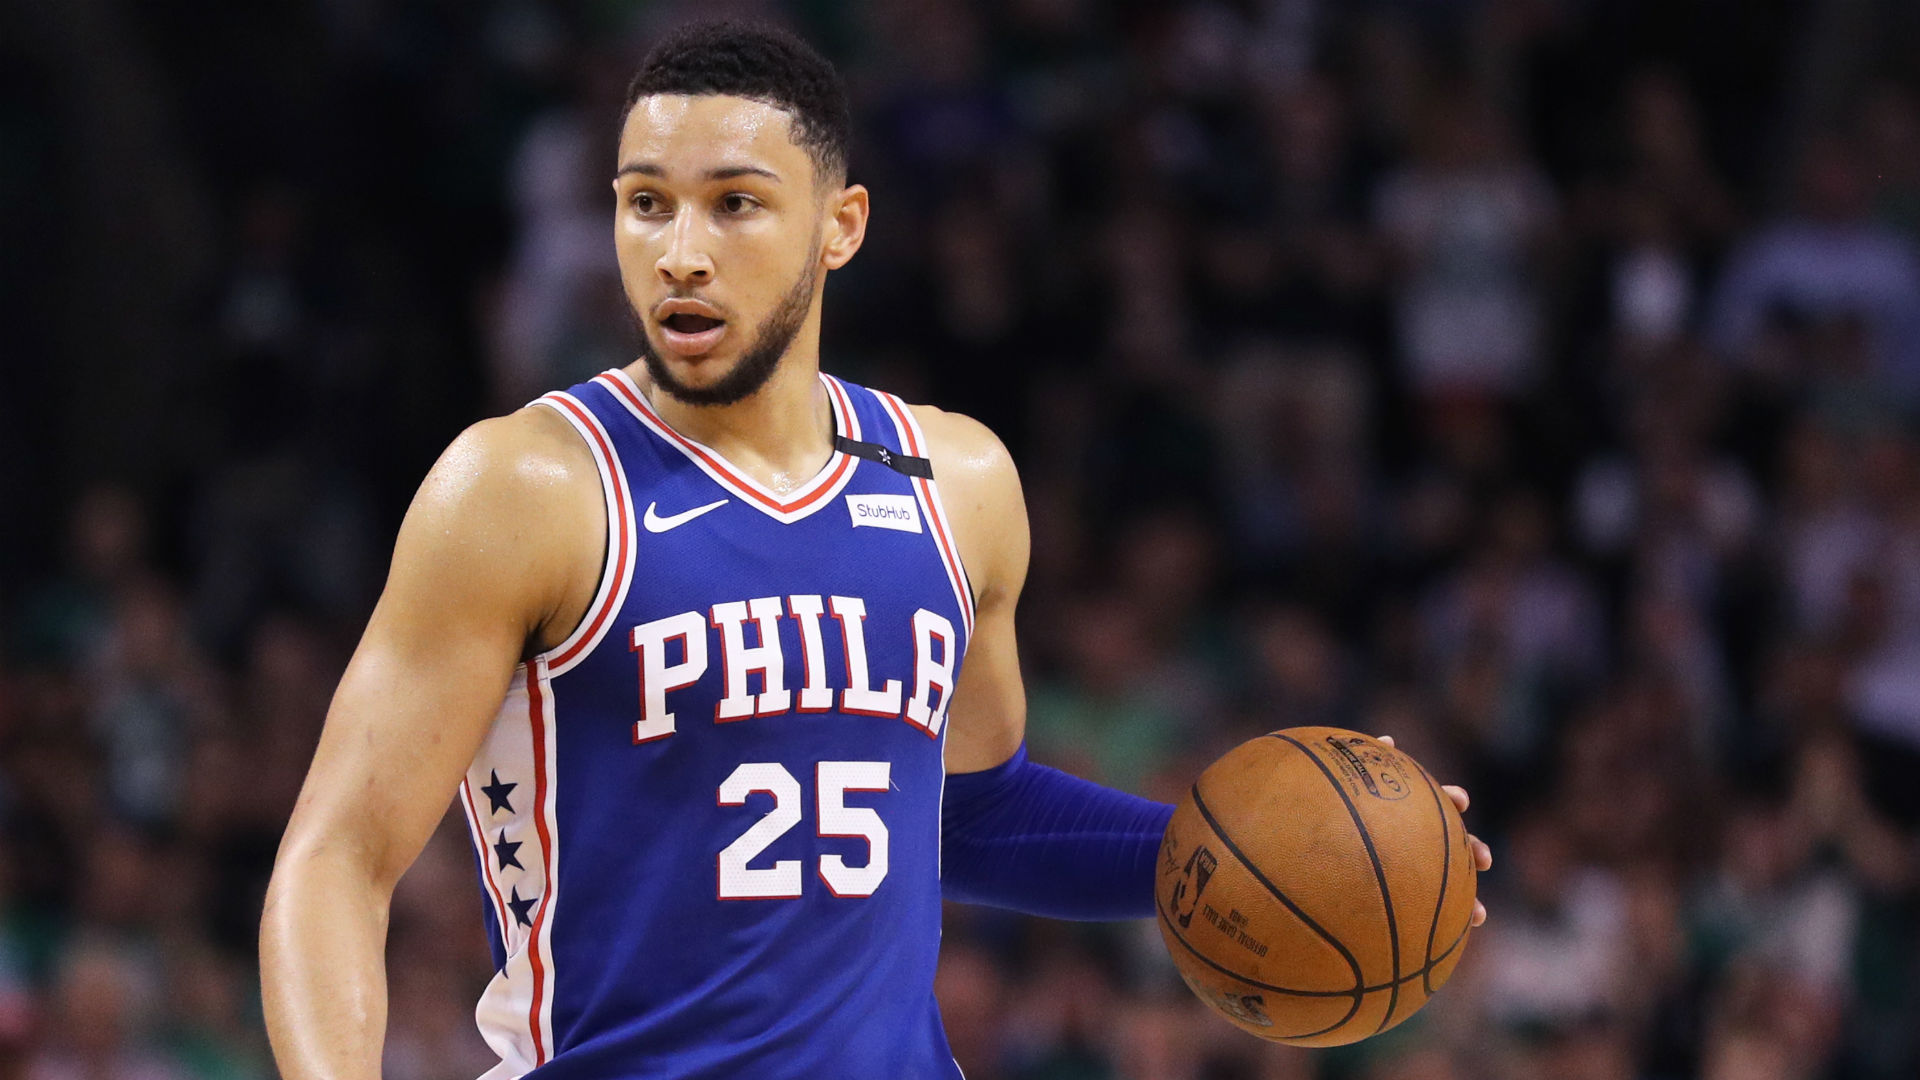 Bensimmons-cropped_1z41c1nqsv6c1ohdloxnppufe